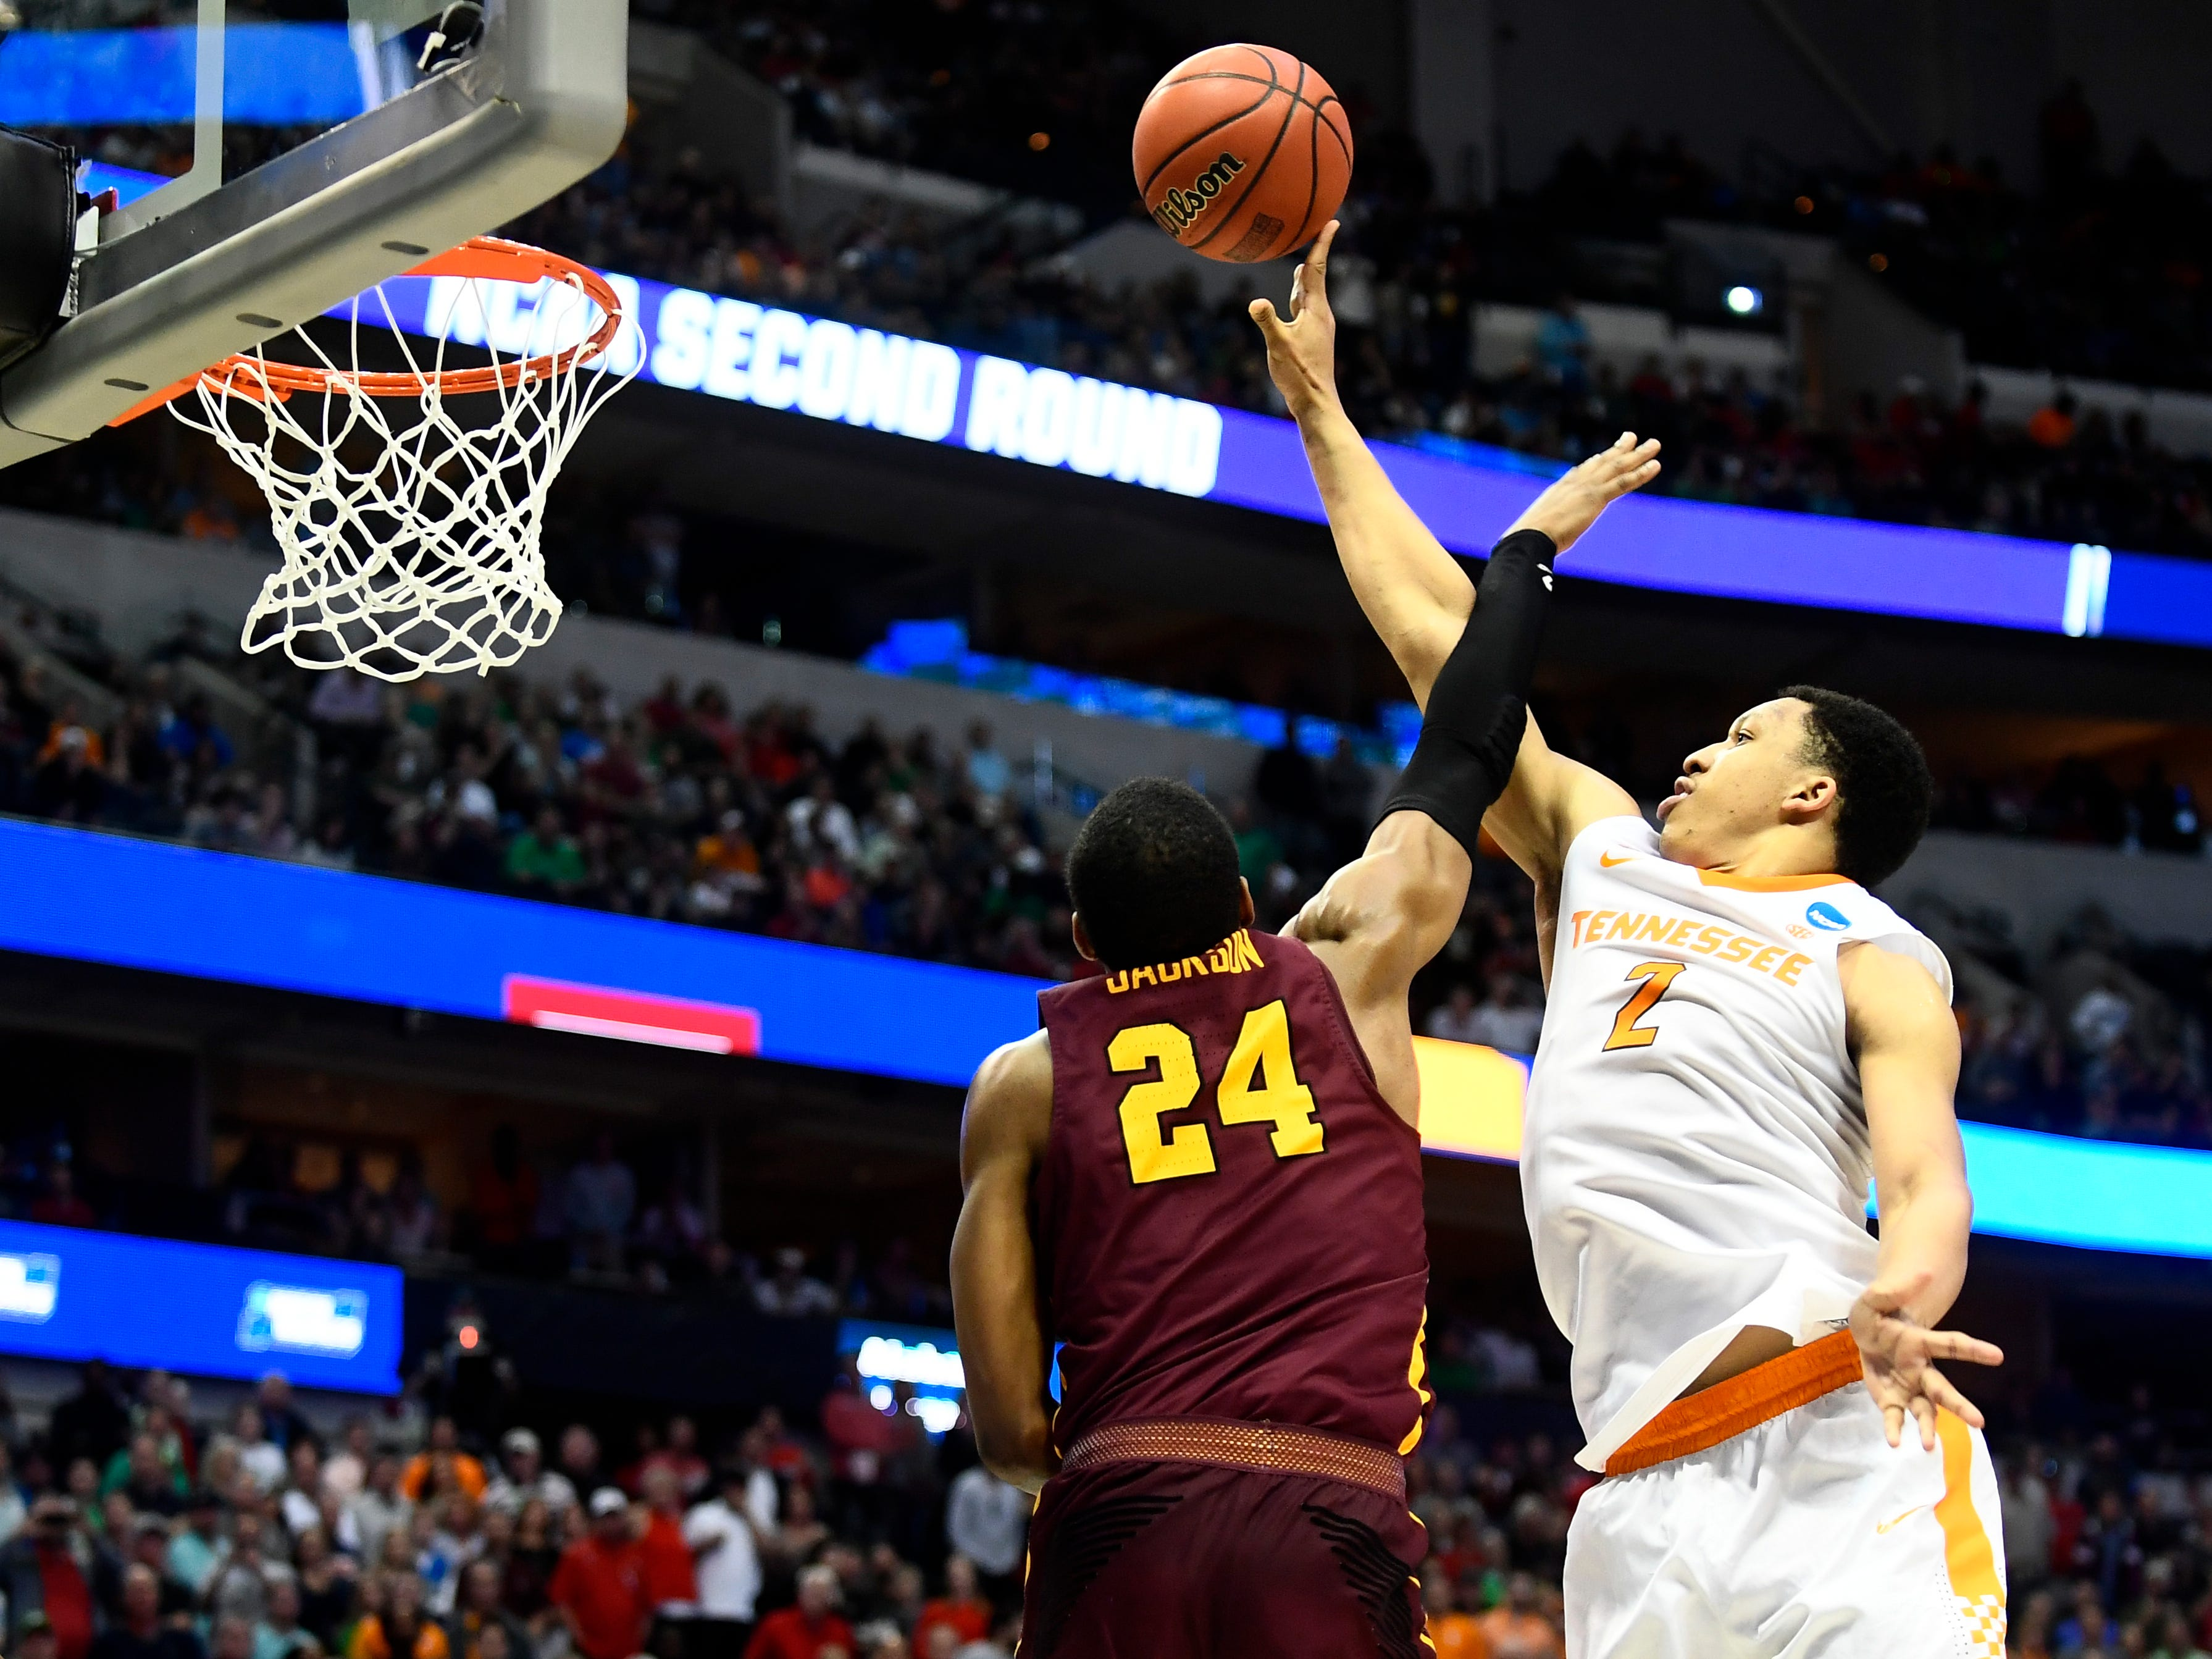 Tennessee forward Grant Williams (2) attempts a shot past Loyola-Chicago forward Aundre Jackson (24) to tie the game in the final minute during the NCAA Tournament second round game between Tennessee and Loyola-Chicago at American Airlines Center in Dallas, Texas, on Saturday, March 17, 2018.